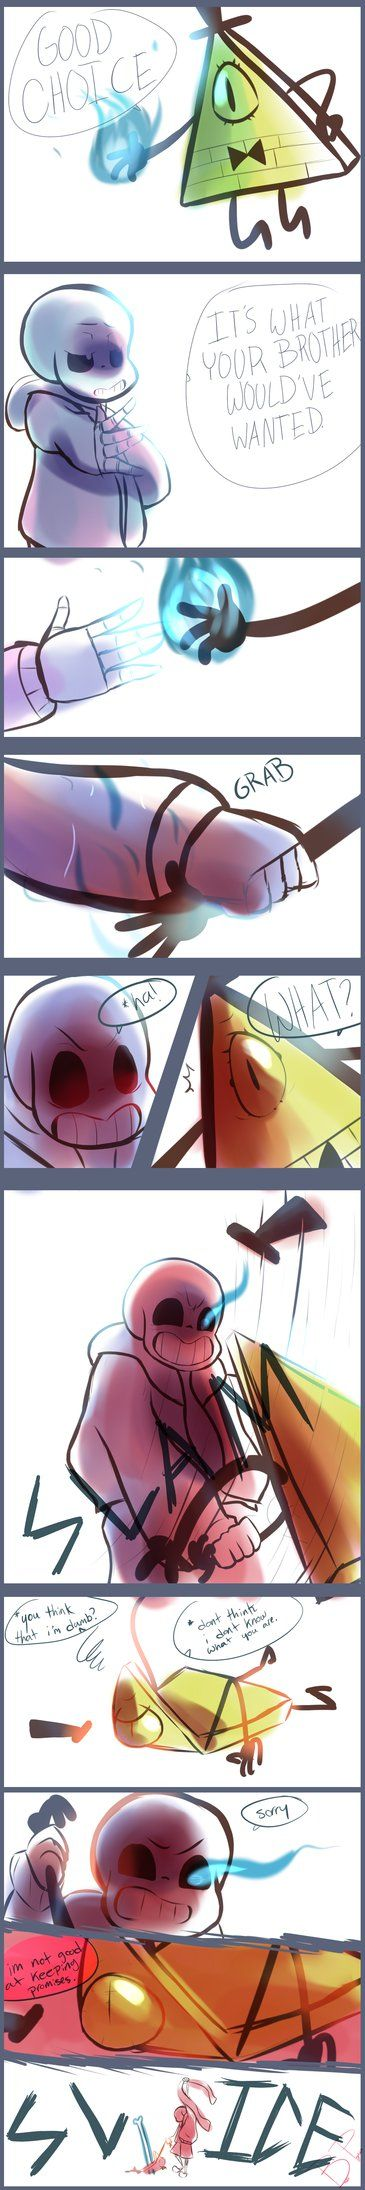 i wonder... what would Sans do if bill offered to prevent time from repeating? Would he take the deal? 8D i couldn't help it i need more crossovers in my life. there might be more of this... okay, ... << WHOA. I NEED MORE OF THIS<<<I'D LOVE TO SEE MORE OF THIS X)